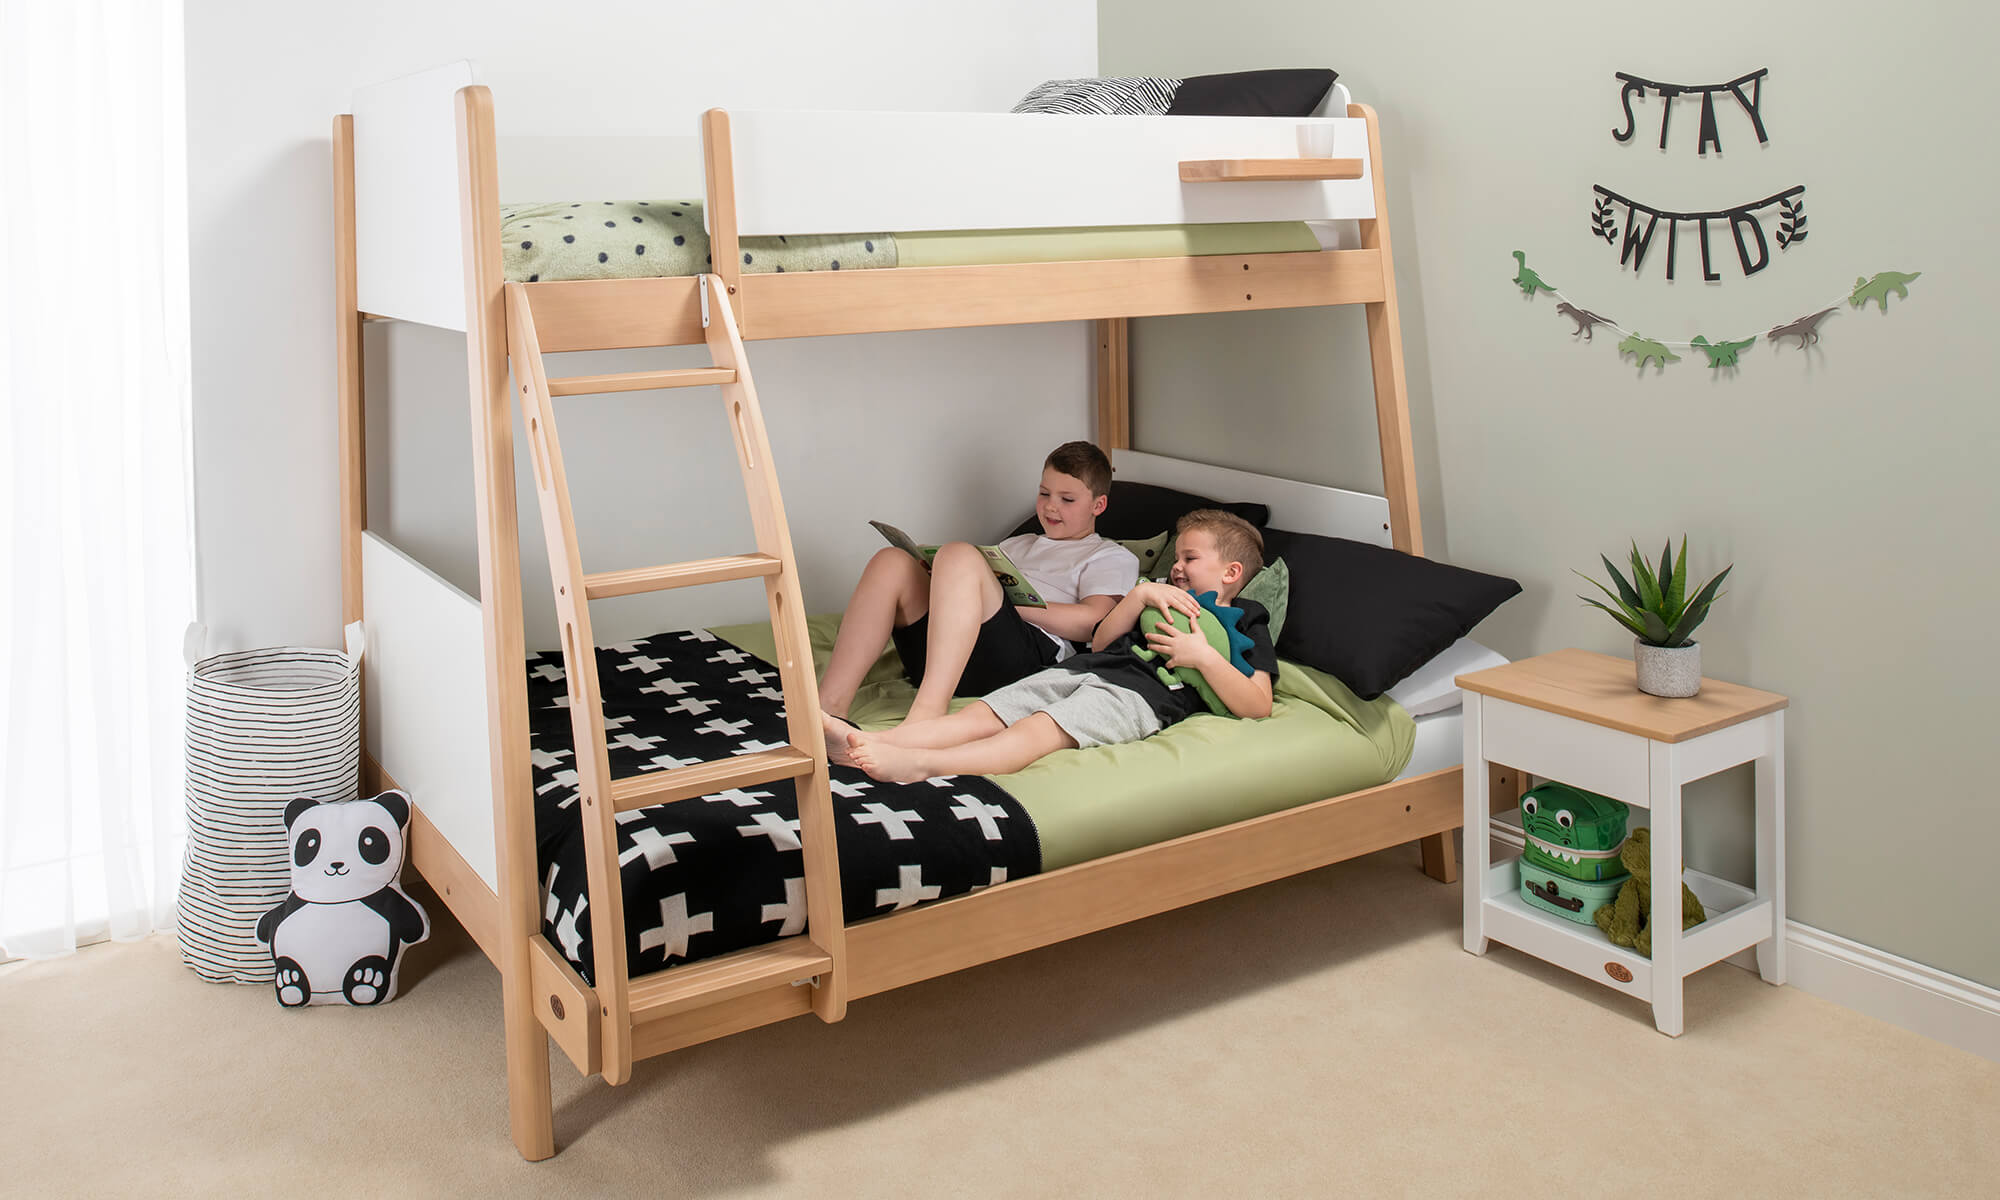 Product_Page_Lifestyles_1000_x_600_Natty_Long_Maxi_Bunk_Bed_White_Almond__2x